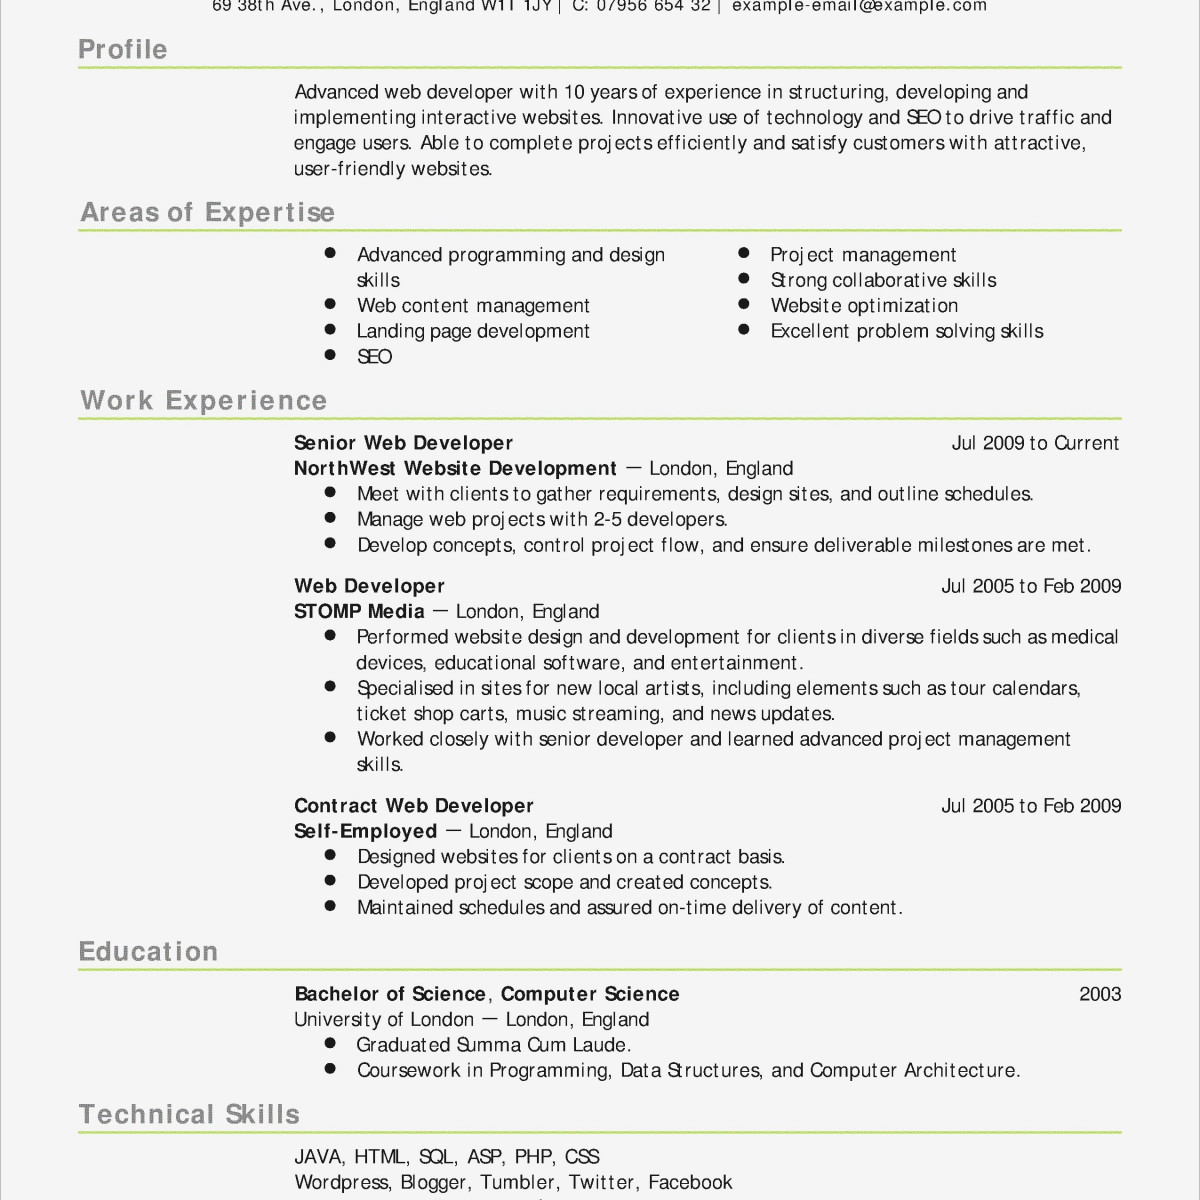 My Perfect Resume Com - How to Cancel My Perfect Resume Subscription Elegant My Perfect